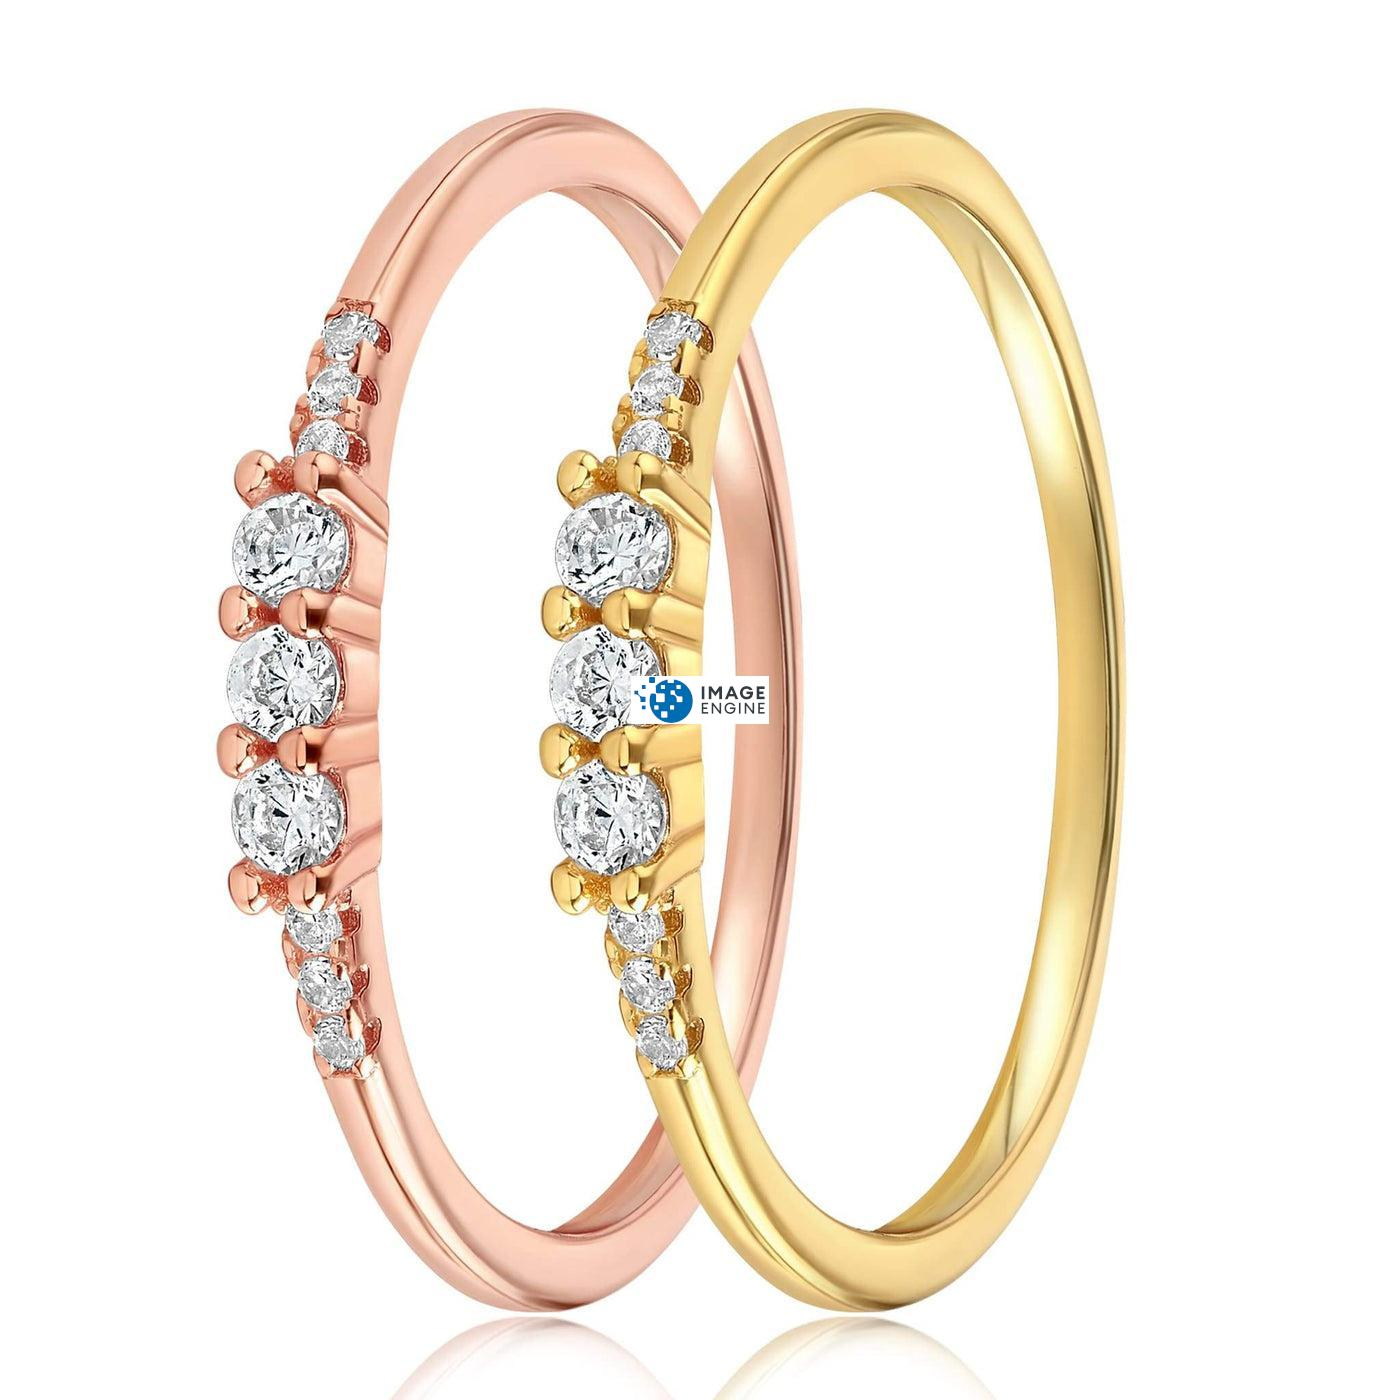 Emie Ring - Side by Side - 18K Yellow Gold Vermeil and 18K Rose Gold Vermeil